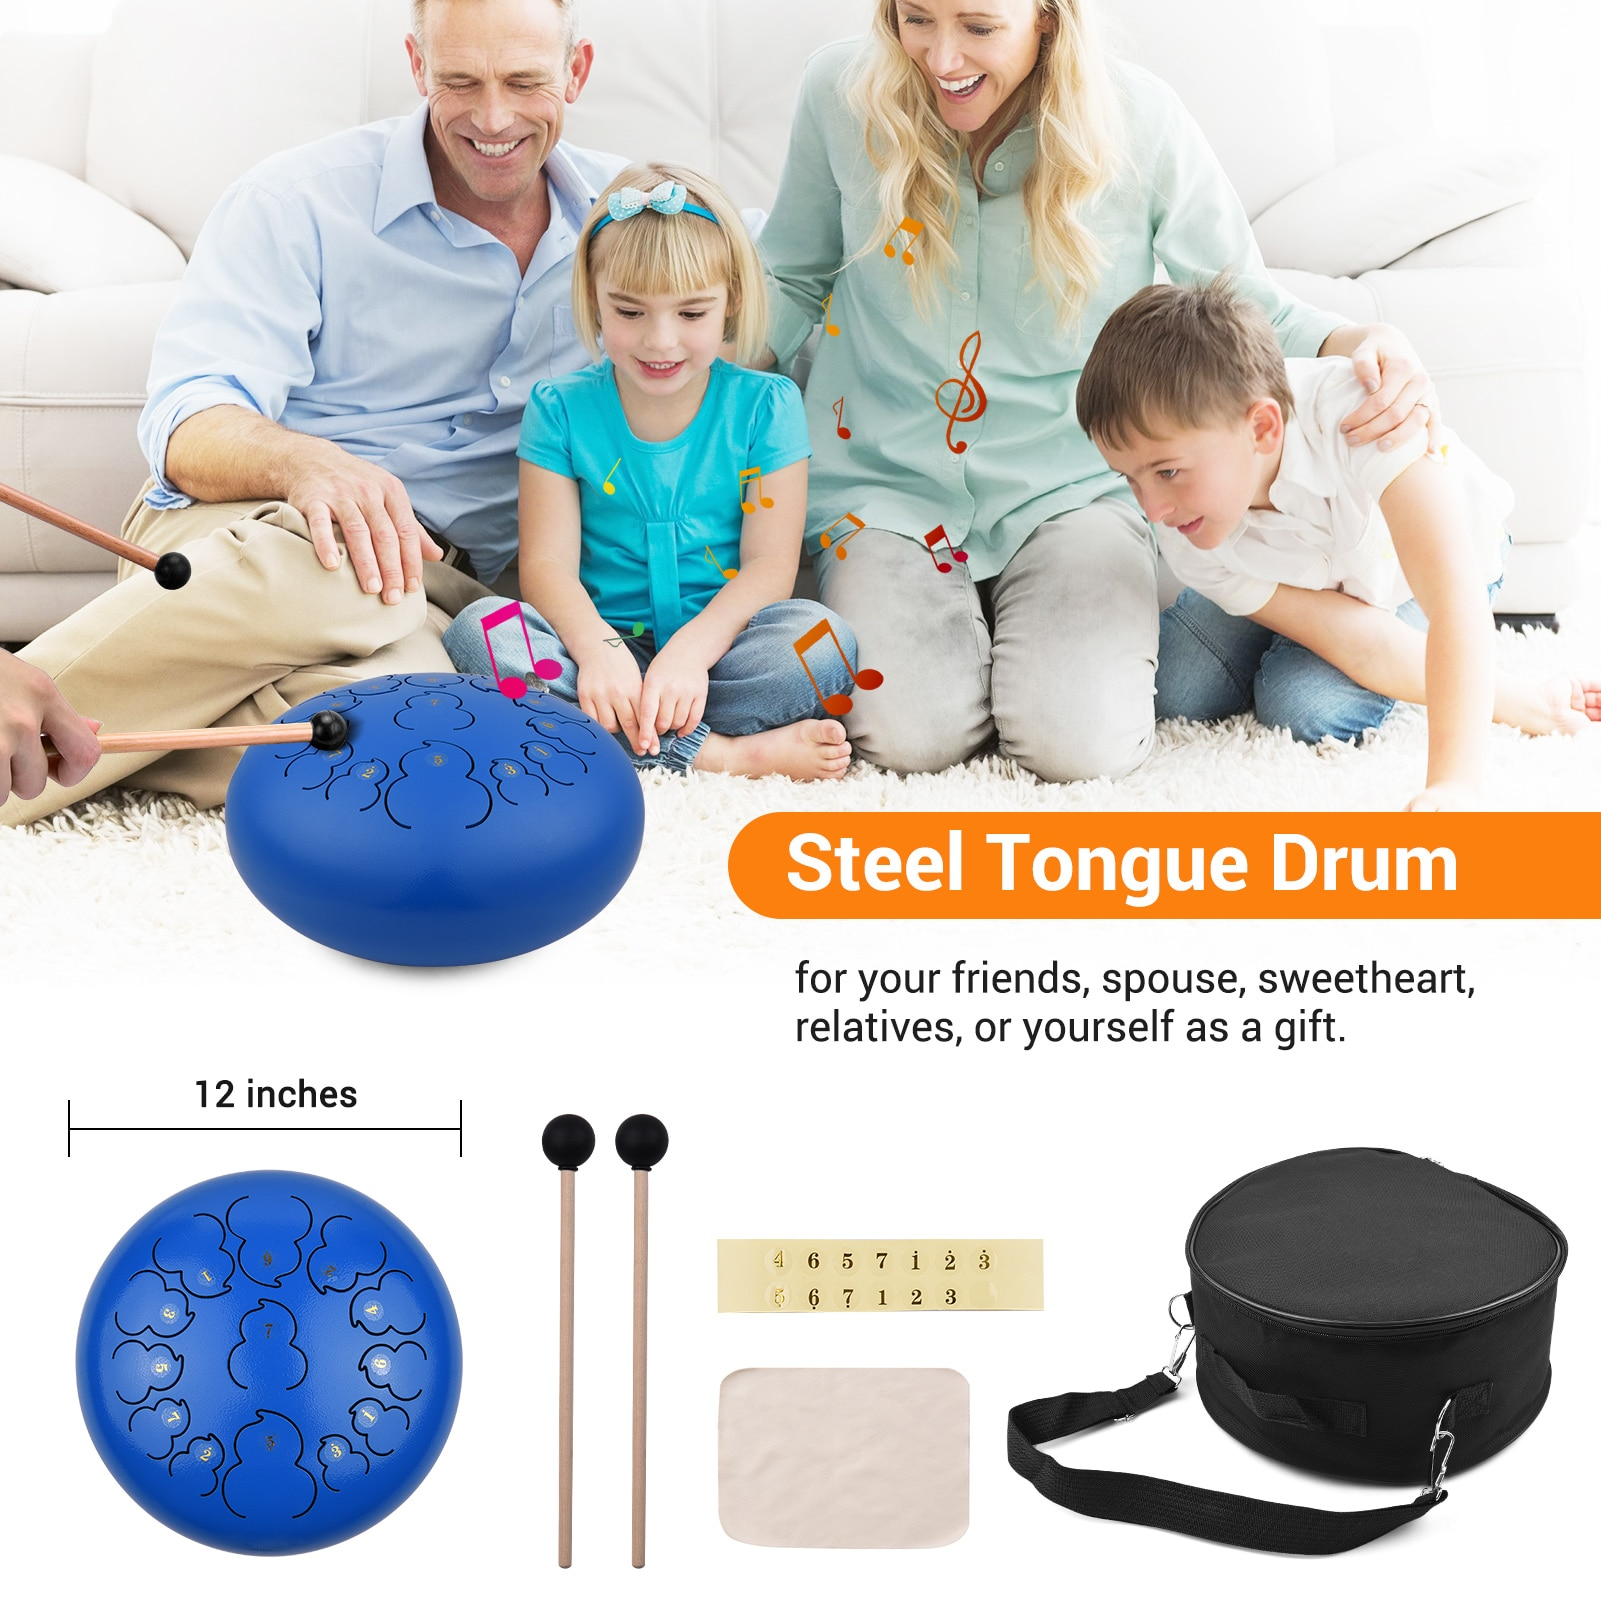 12-inch 13-Tone Steel Tongue Drum D Key Percussion Instrument Hand Pan Drum with Drum Mallets Carry Bag Music Book